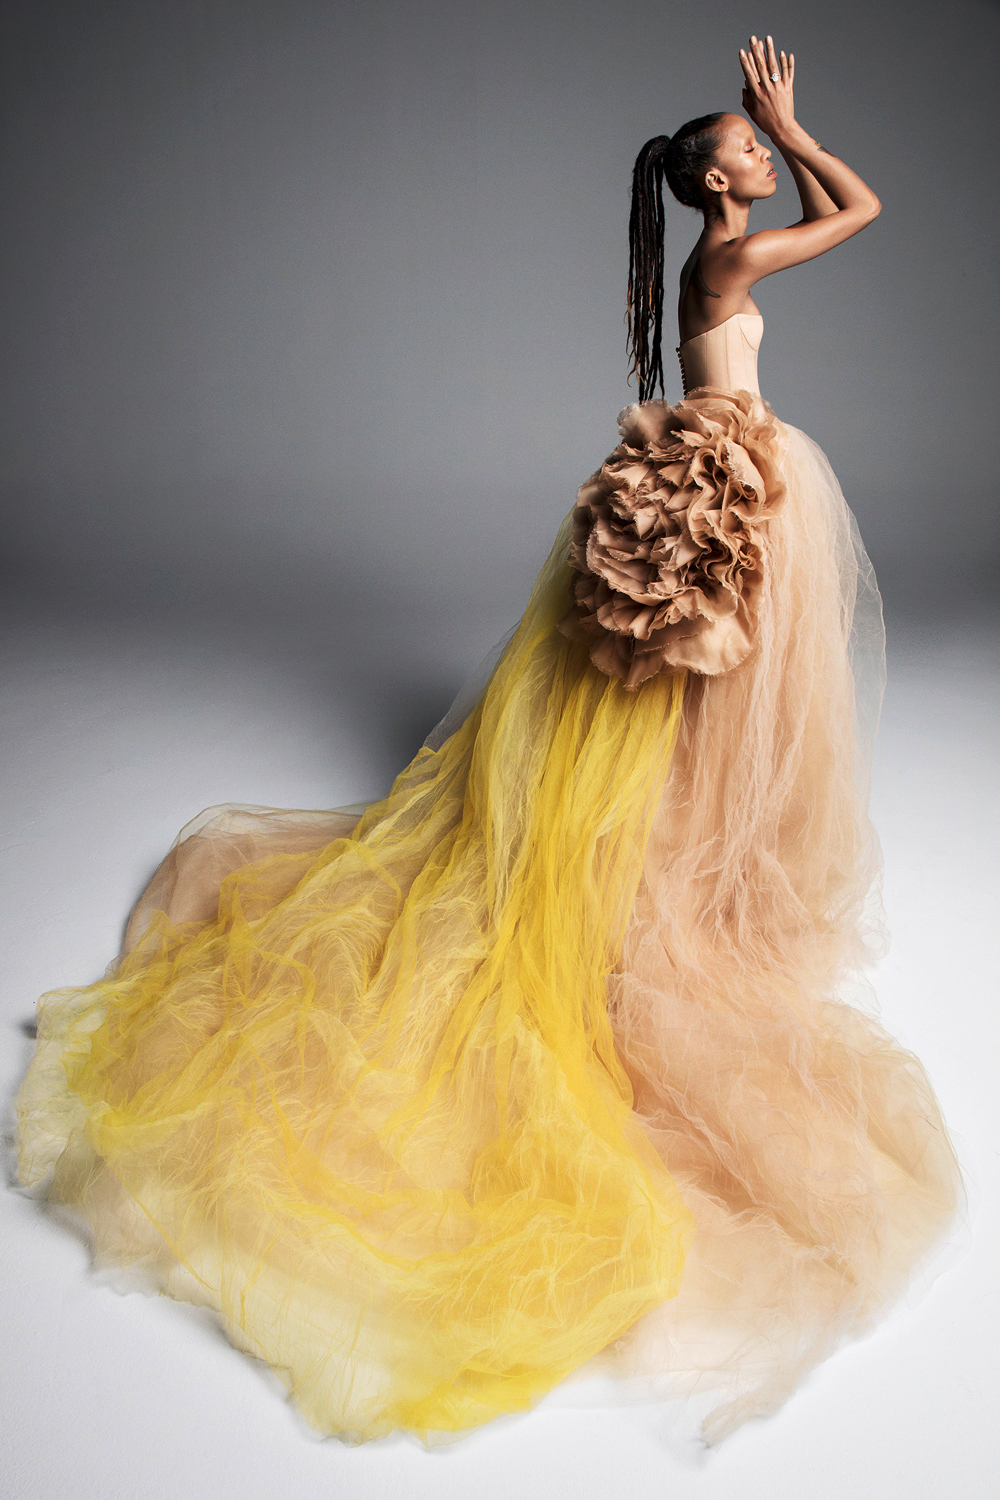 vera wang wedding dress spring 2019 yellow tan tulle strapless